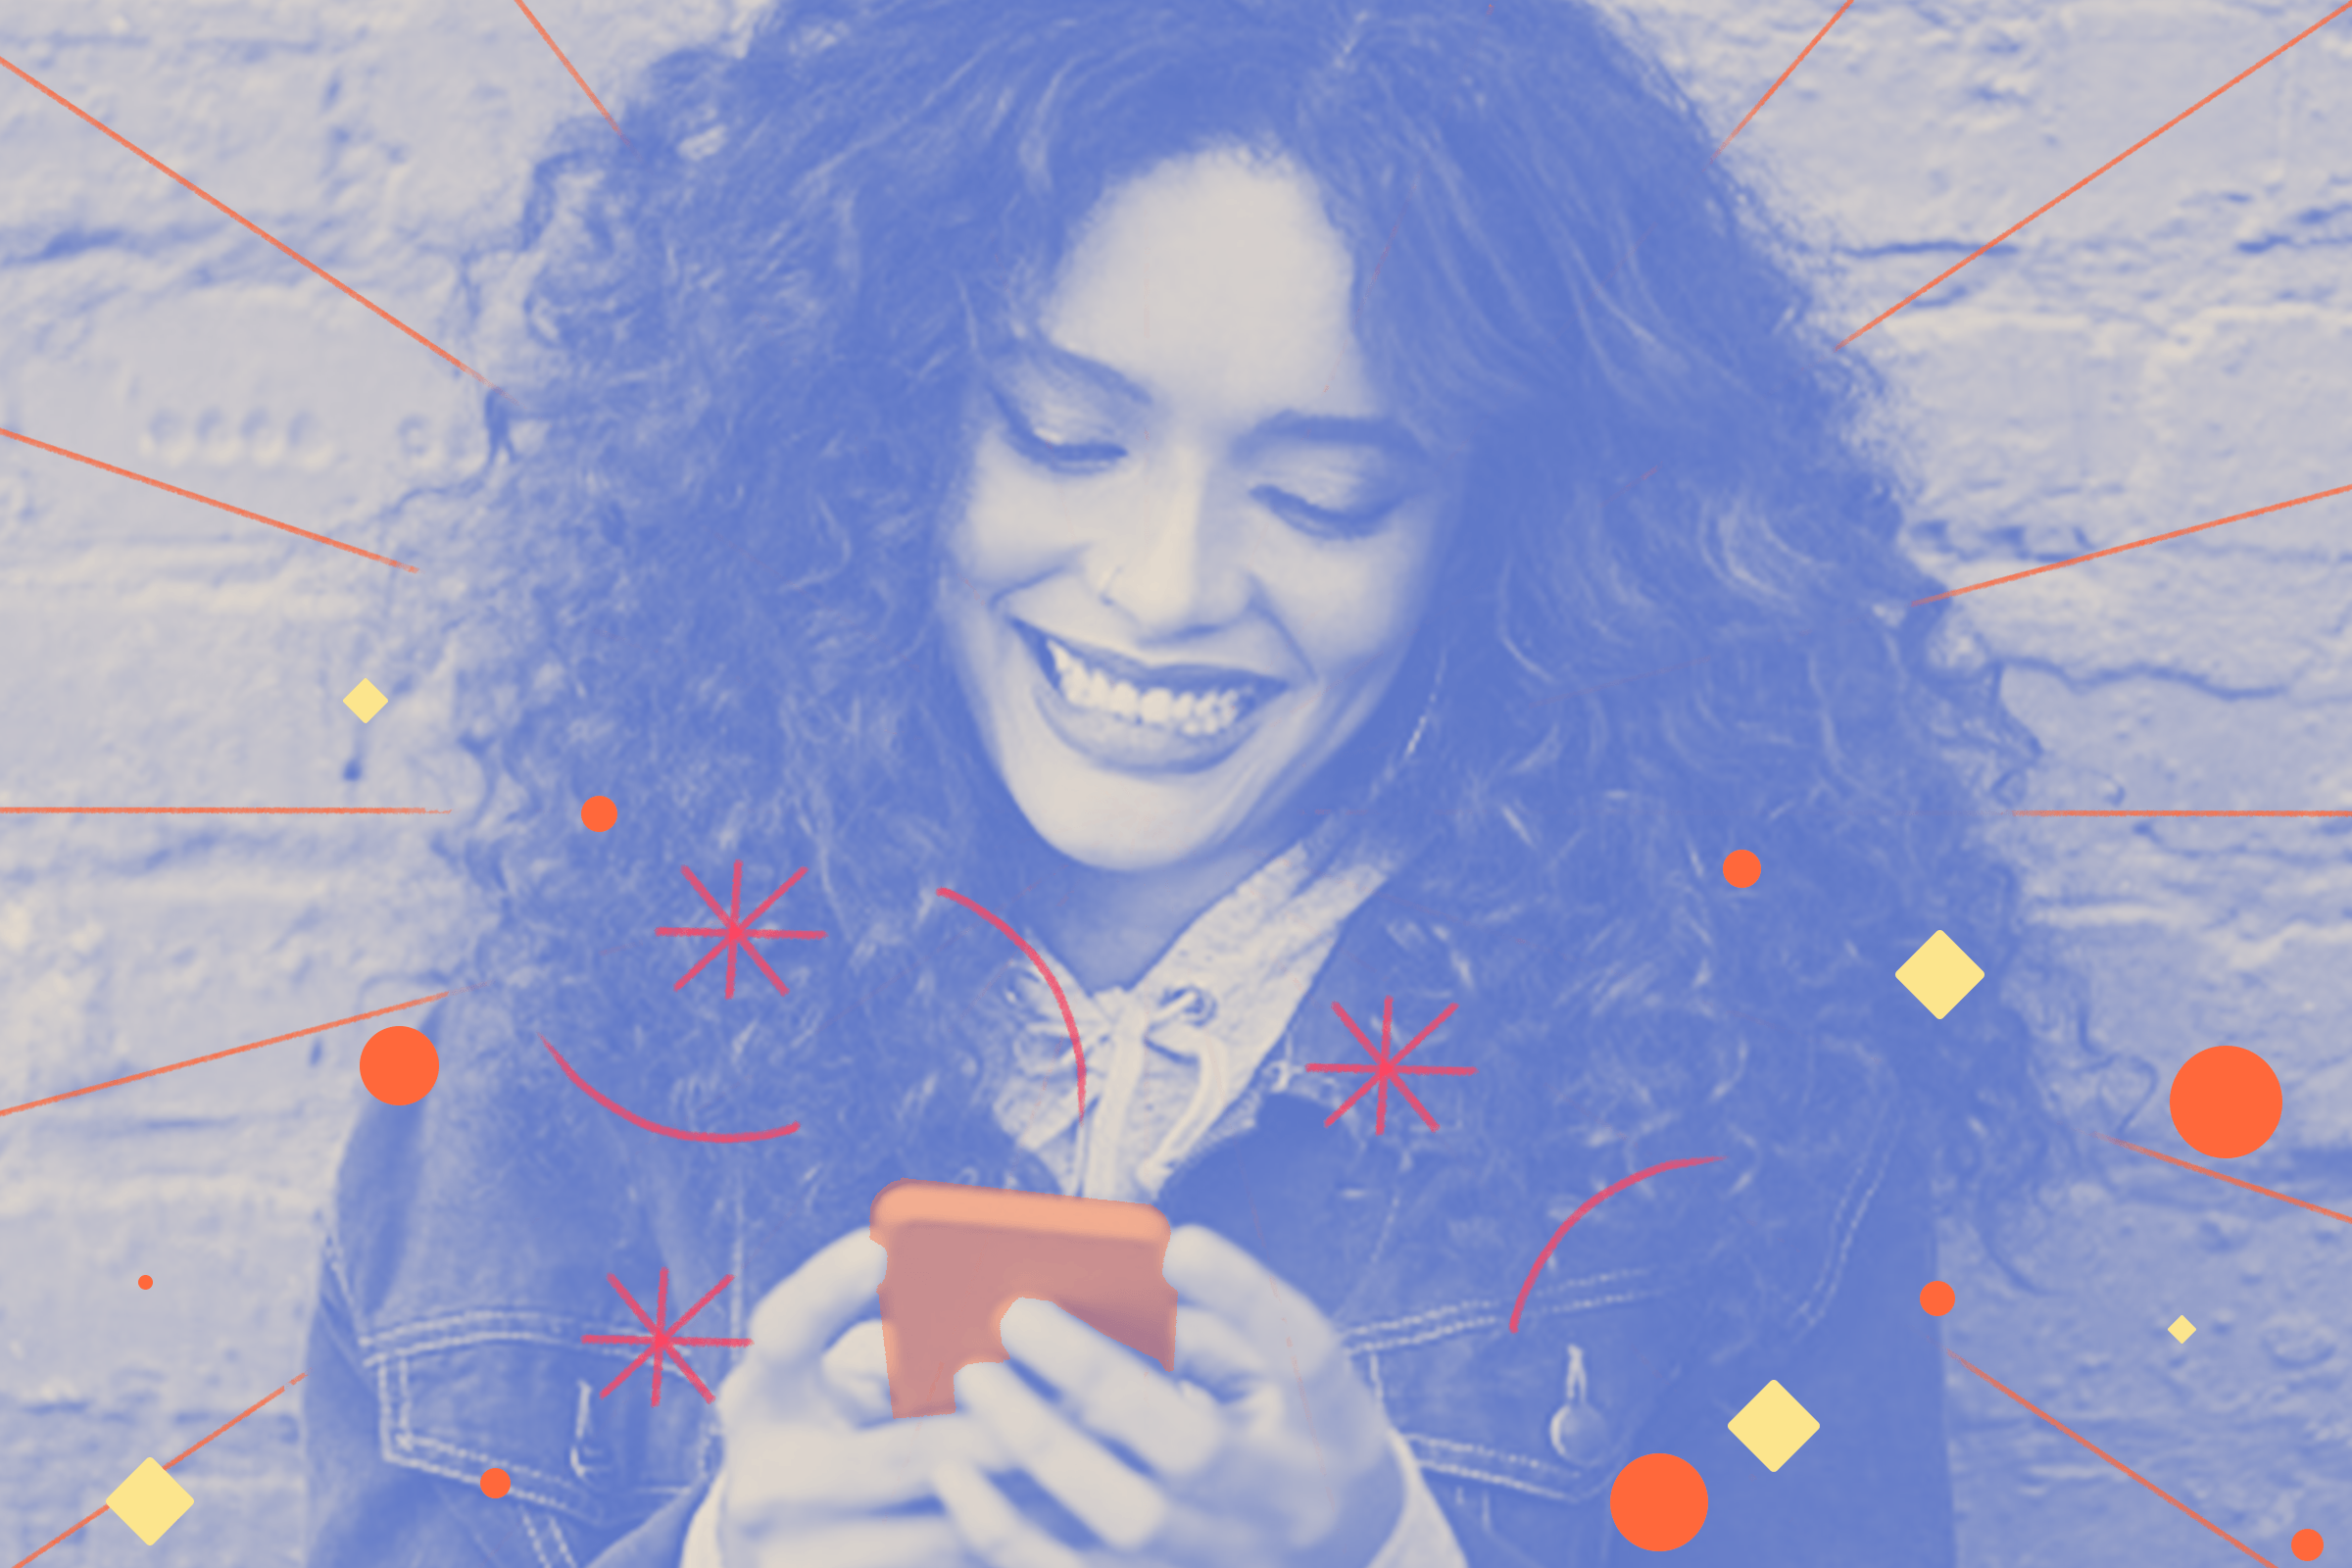 Blue filtered image of a woman with curly hair looking at her phone with a smile.